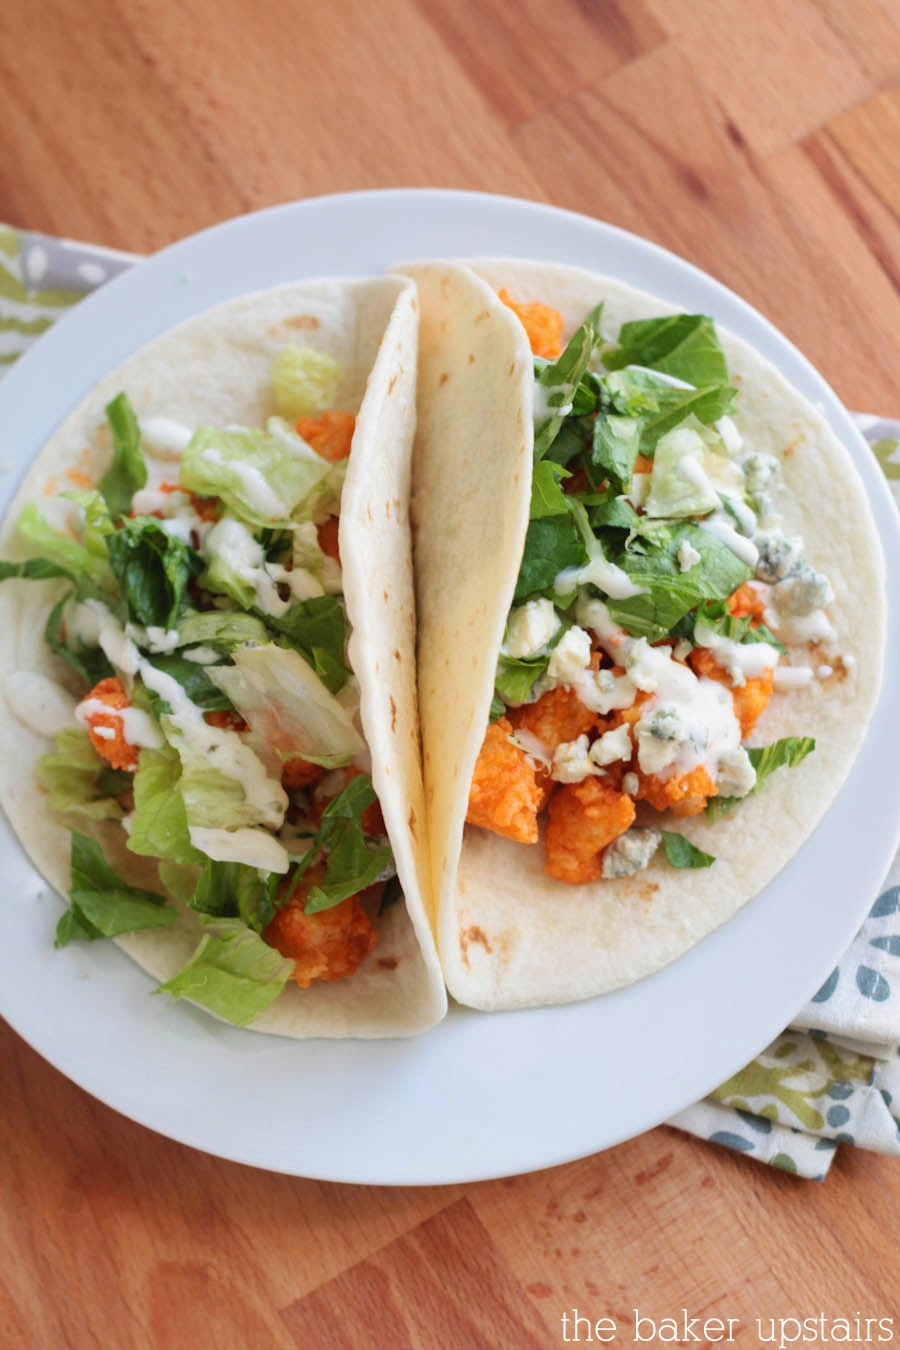 These buffalo chicken tacos are packed with flavor and so delicious!